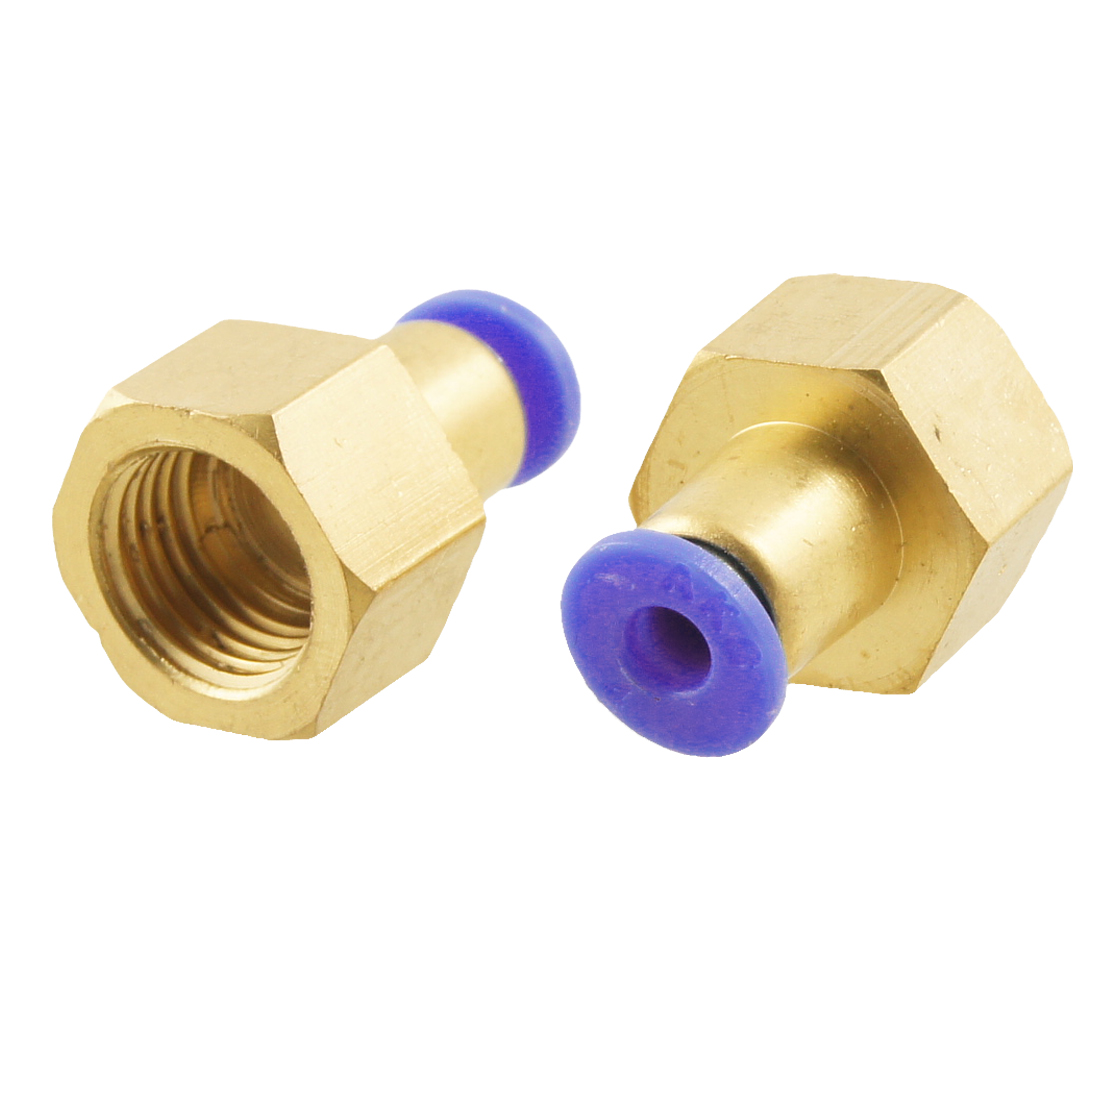 2 Pcs Pneumatic Fitting Female Thread Full Port 11.6mm x 4mm Quick Connectors